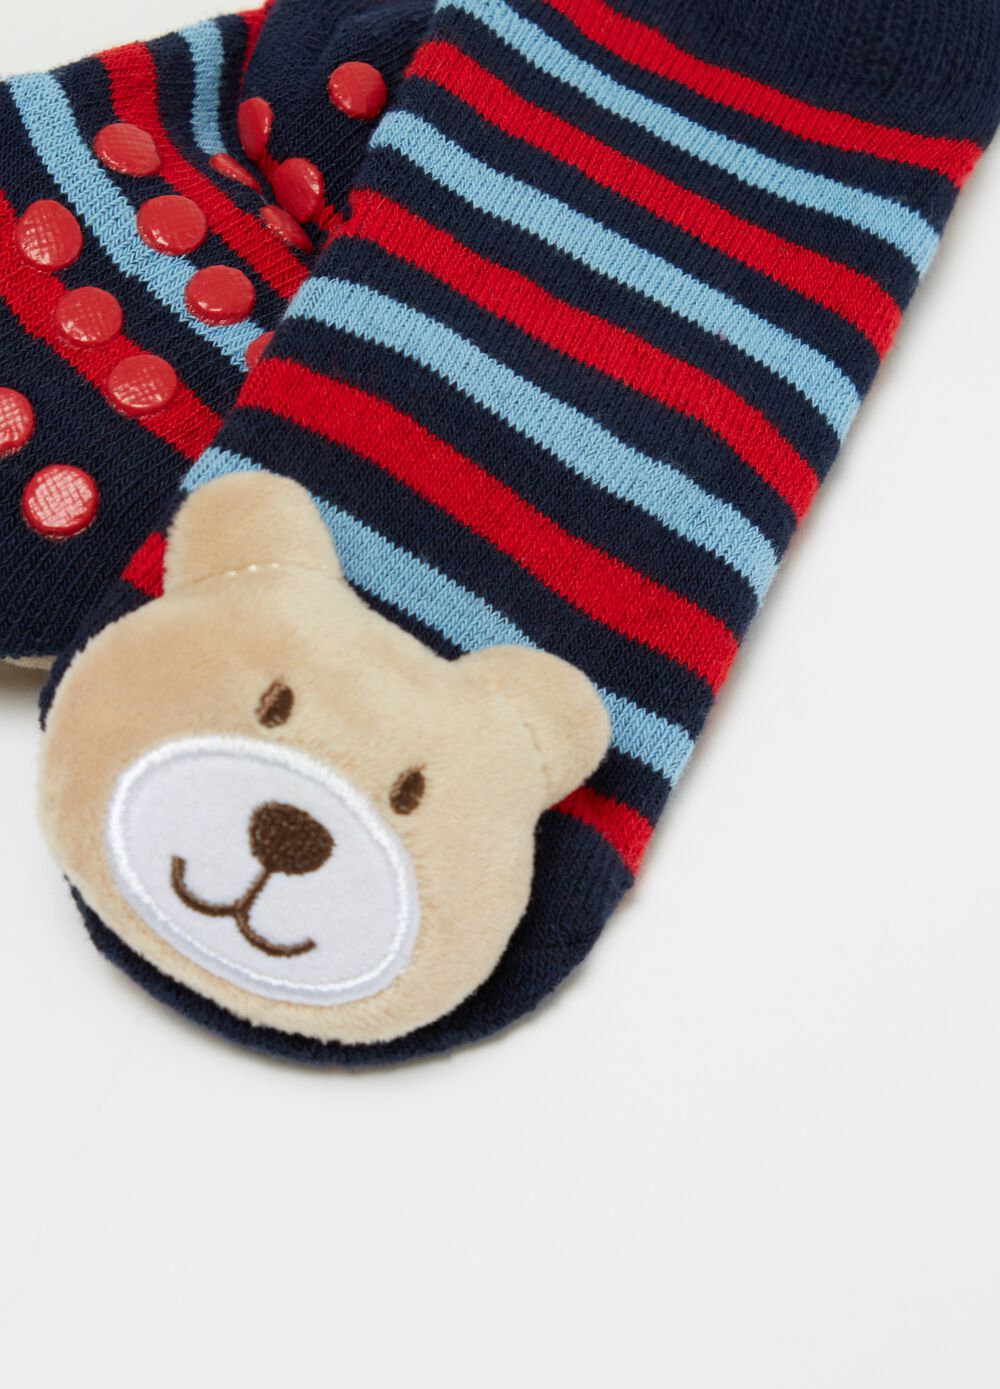 Slipper socks with bear and stripes